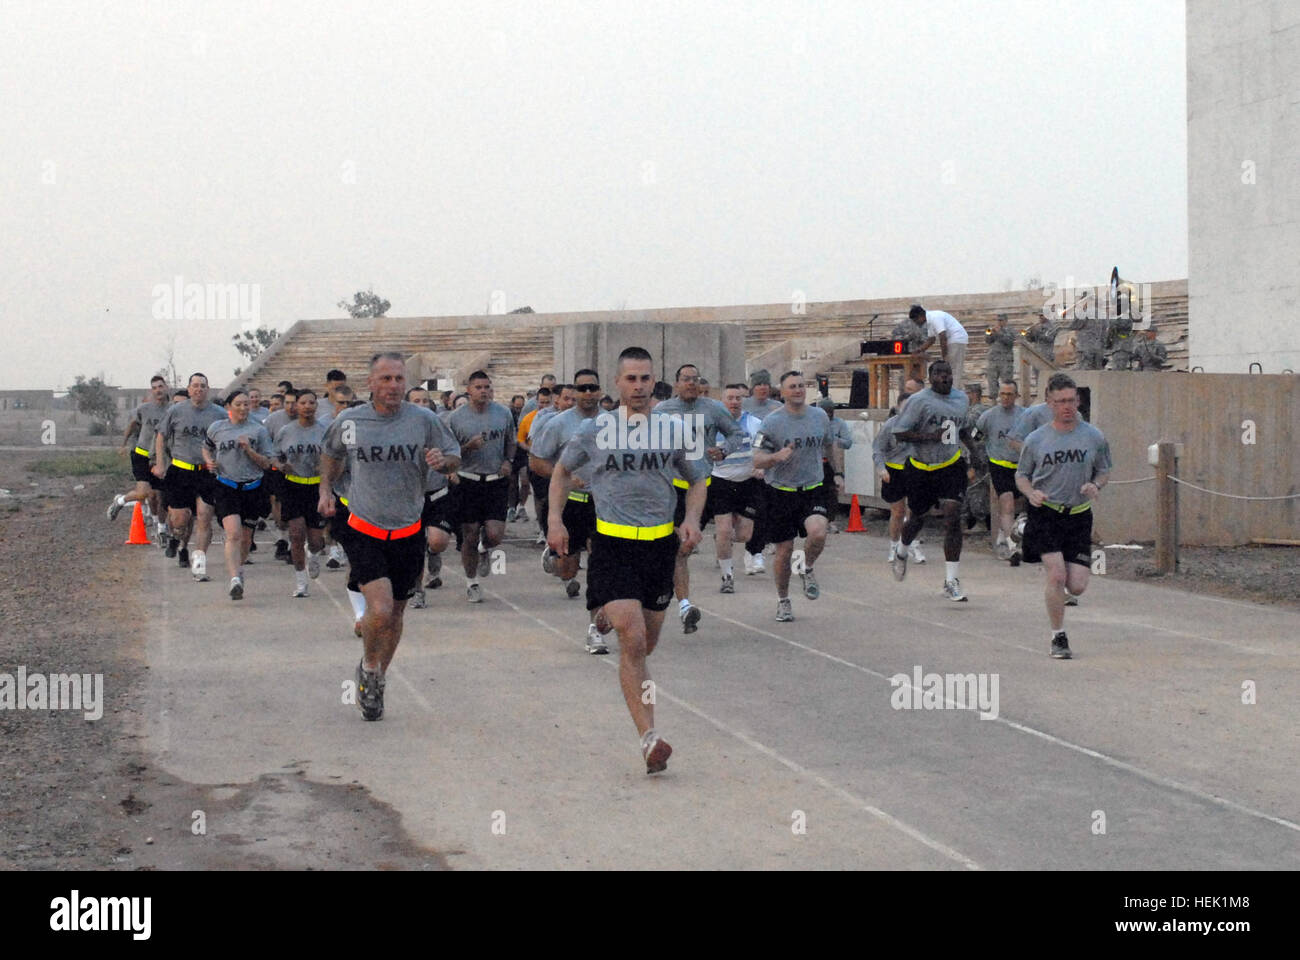 Runners start off the race with furious ambition followed by the walkers of the Division Special Troops Battalion - Stock Image